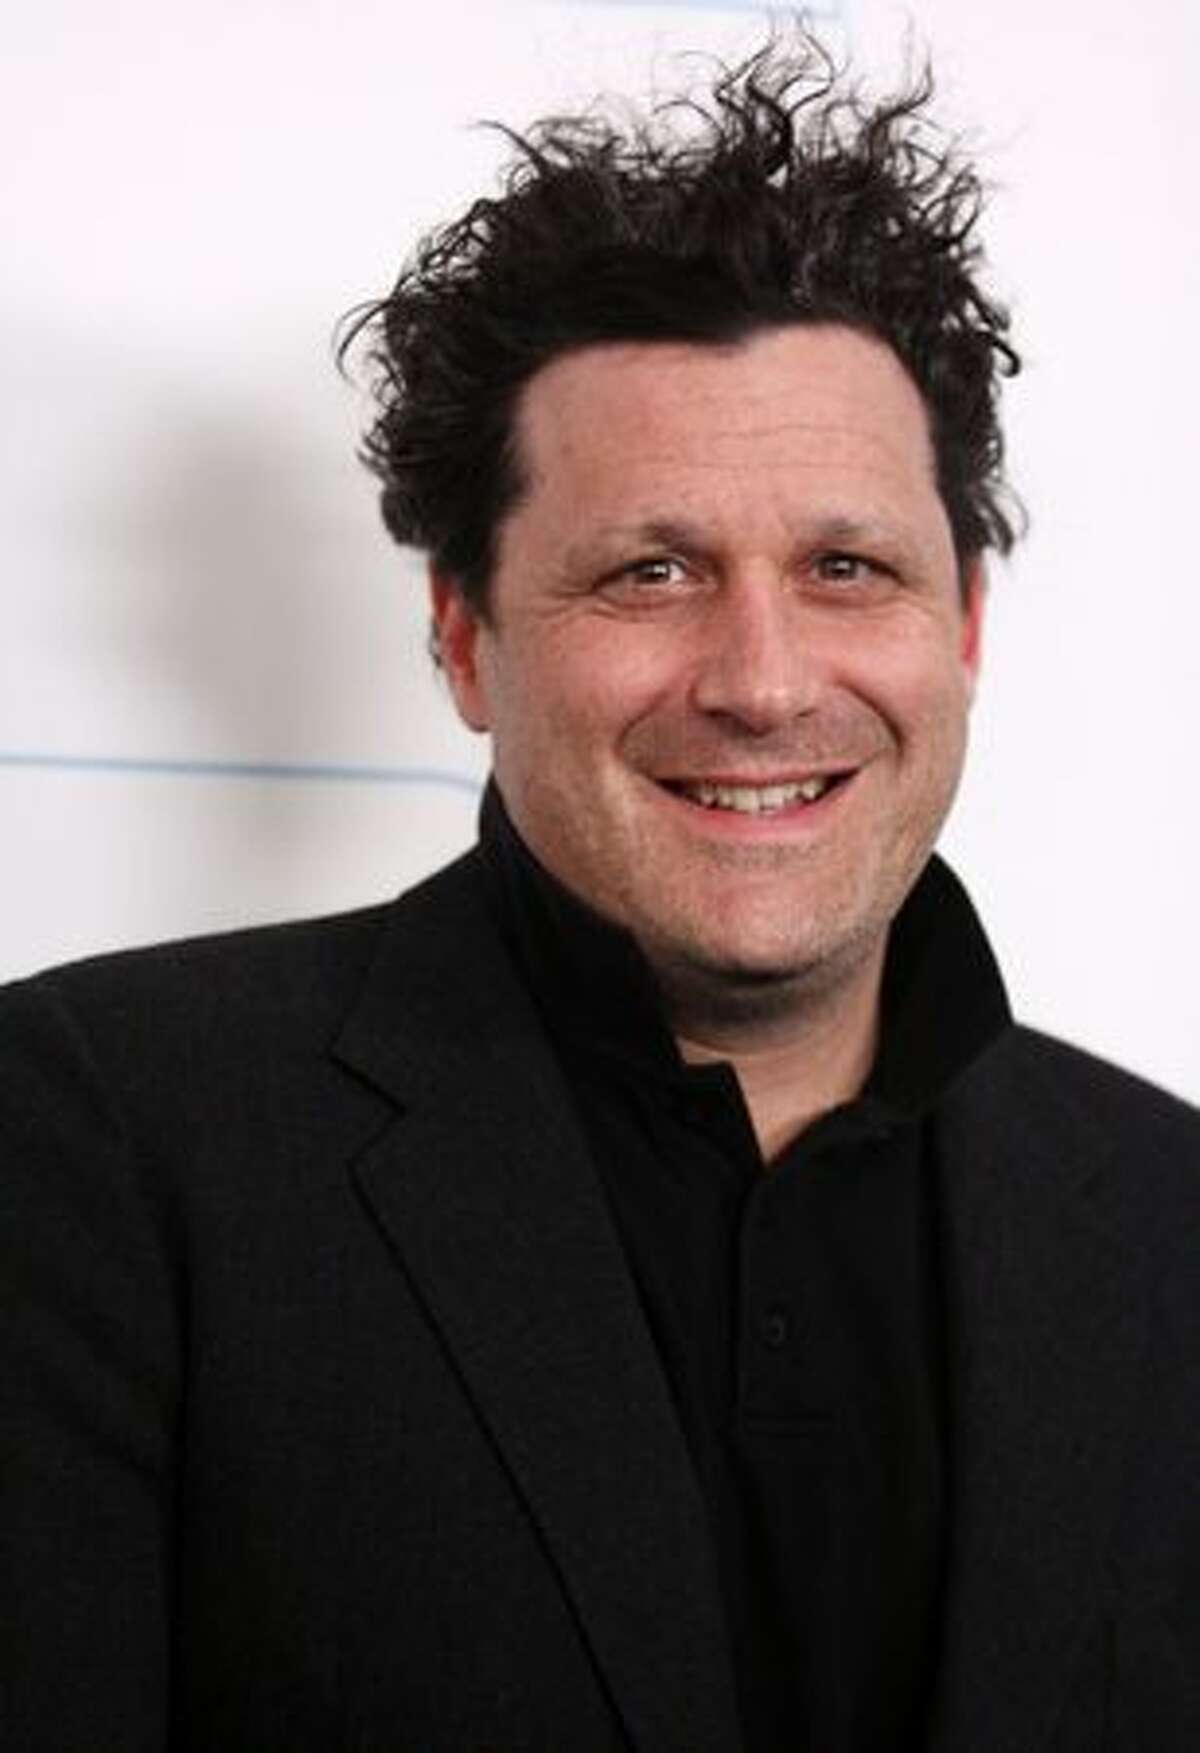 Fashion designer Isaac Mizrahi attends Bravo's 2010 Upfront Party at Skylight Studio in New York City.